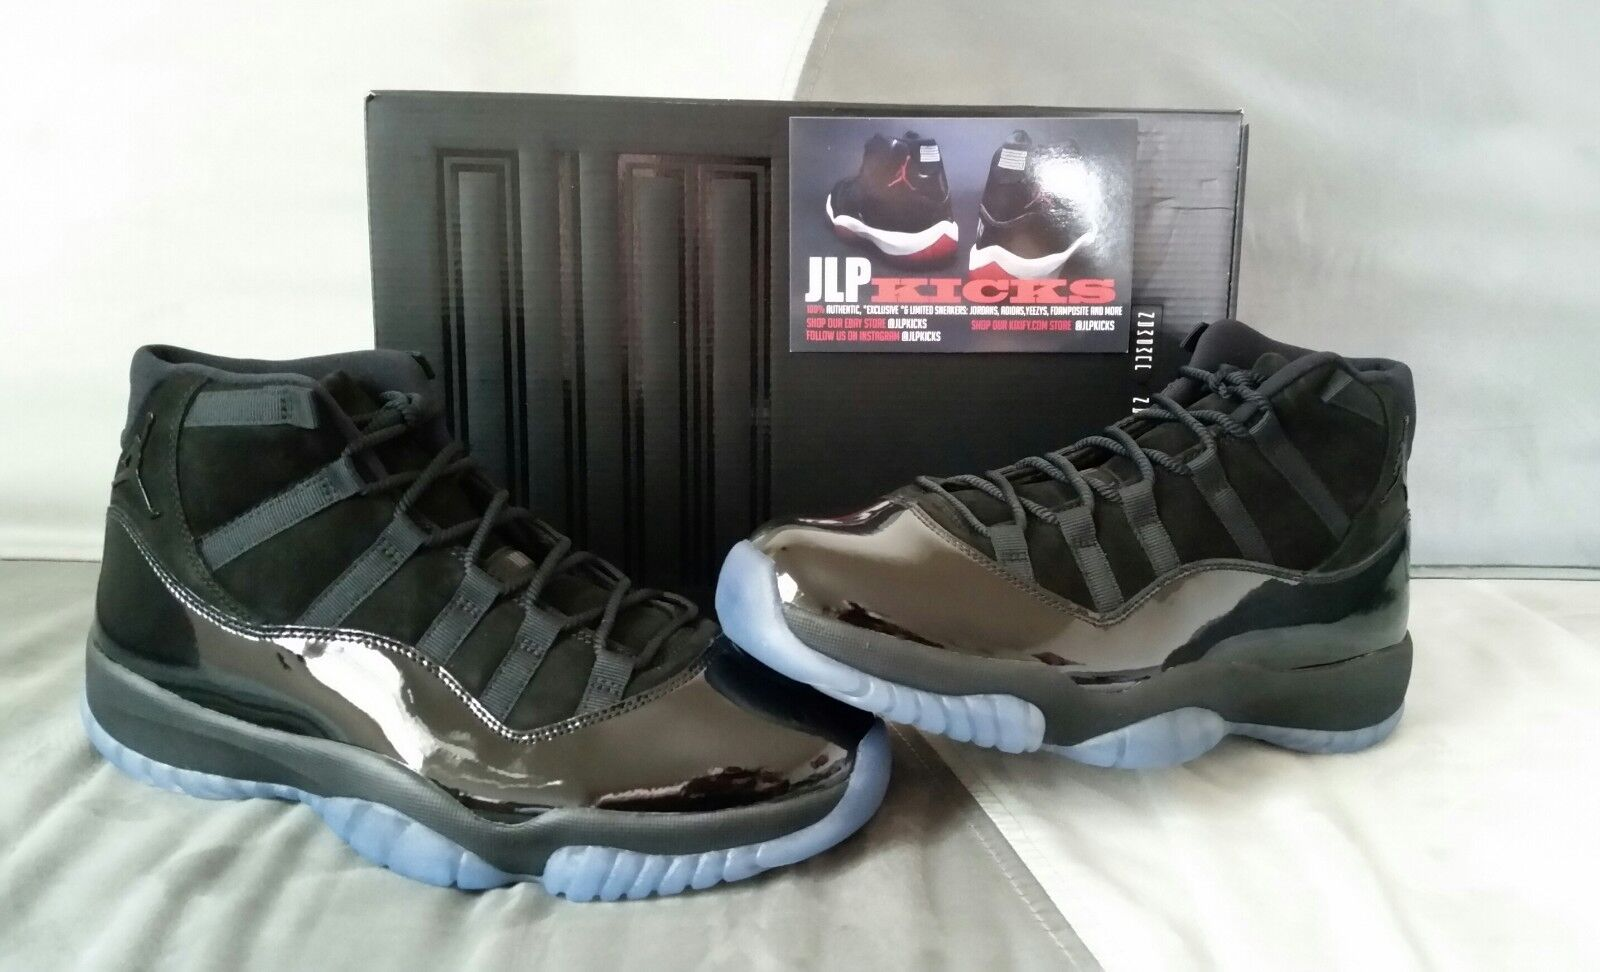 Air Jordan 11 Cap and Gown Retro Triple Black Prom Night 378037 005 All Sizes